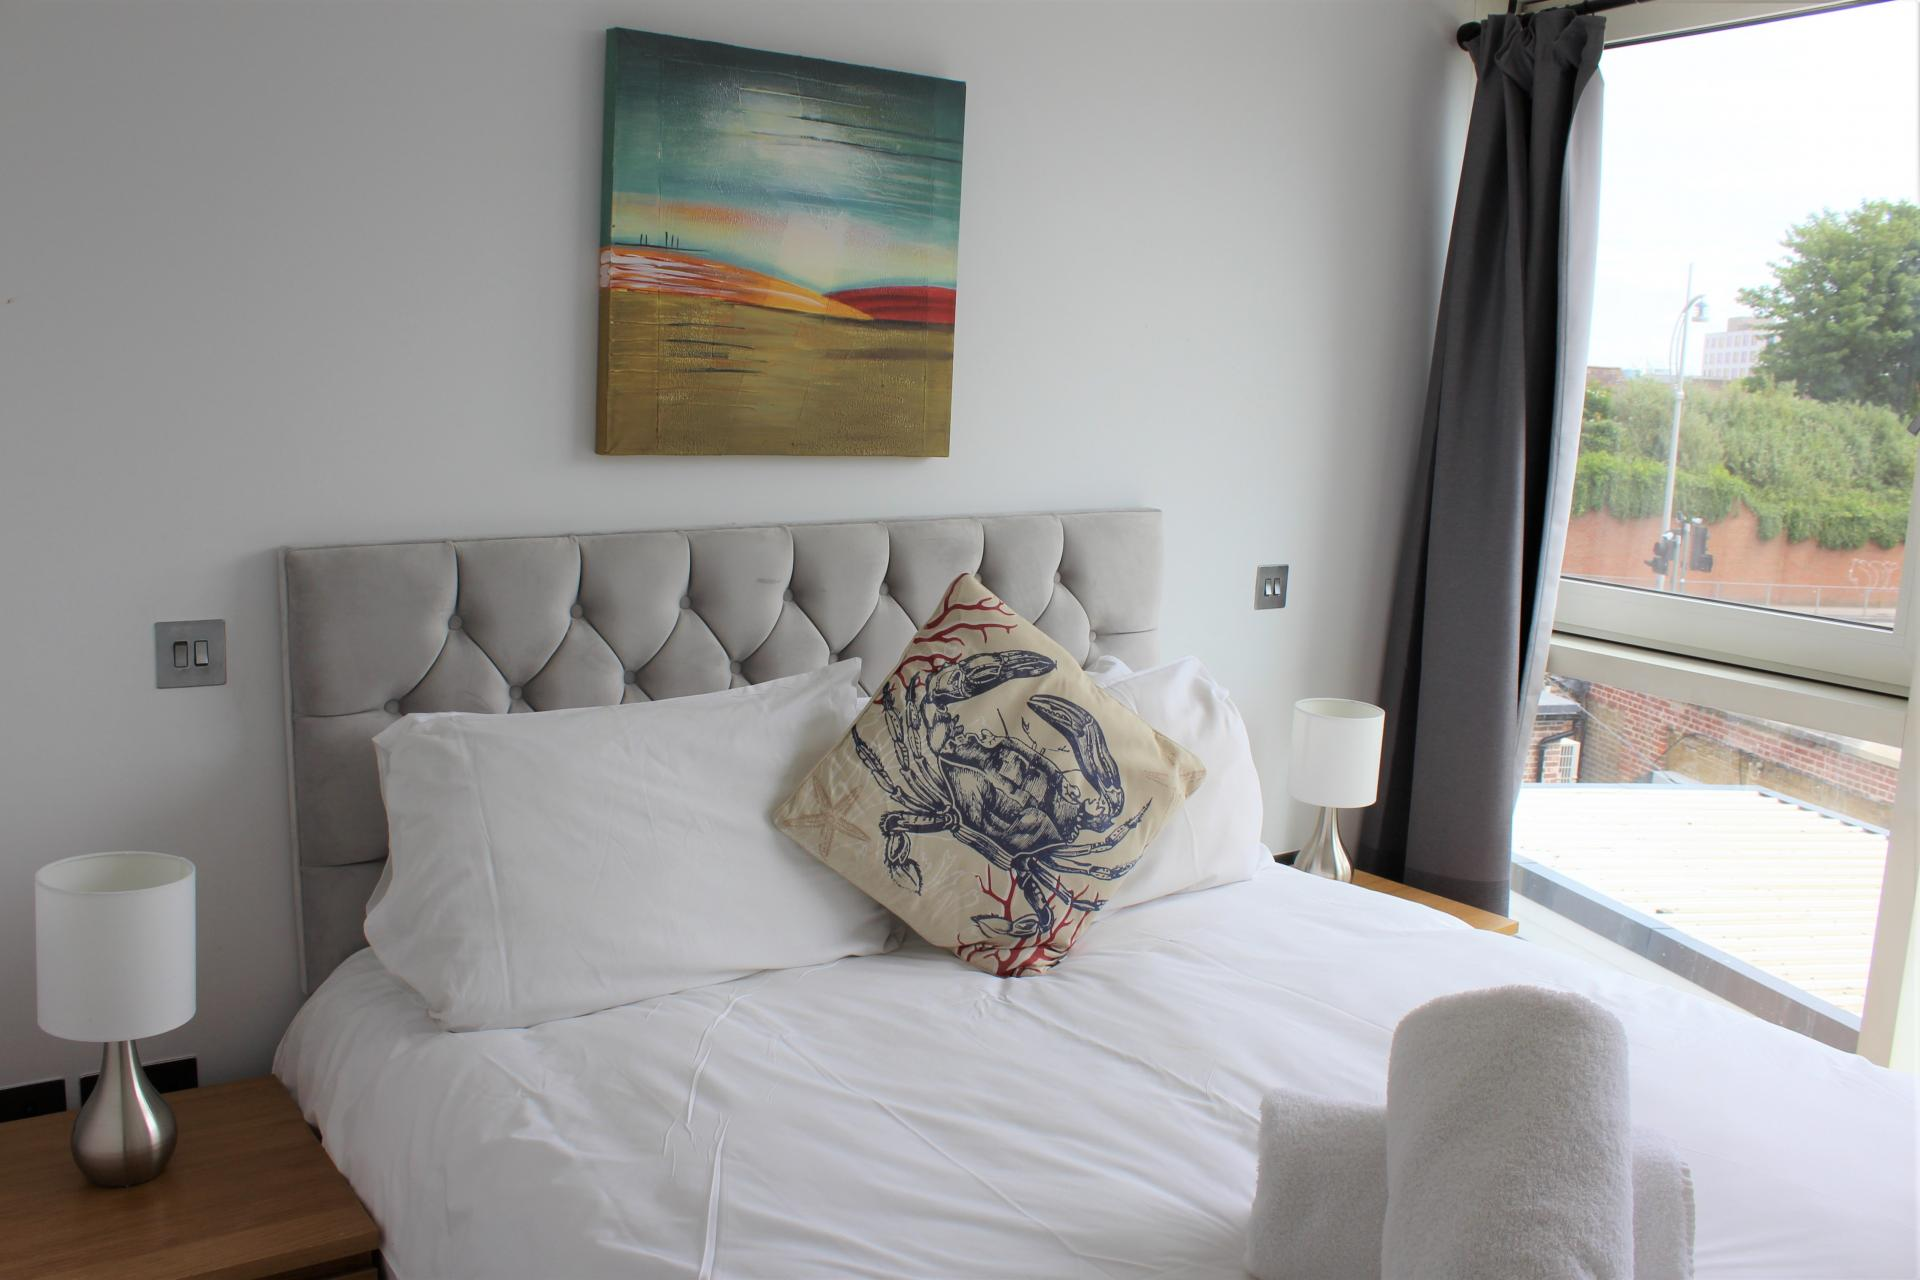 Bedroom at Gunwharf Quays Apartments, Gunwharf Quays, Portsmouth - Citybase Apartments